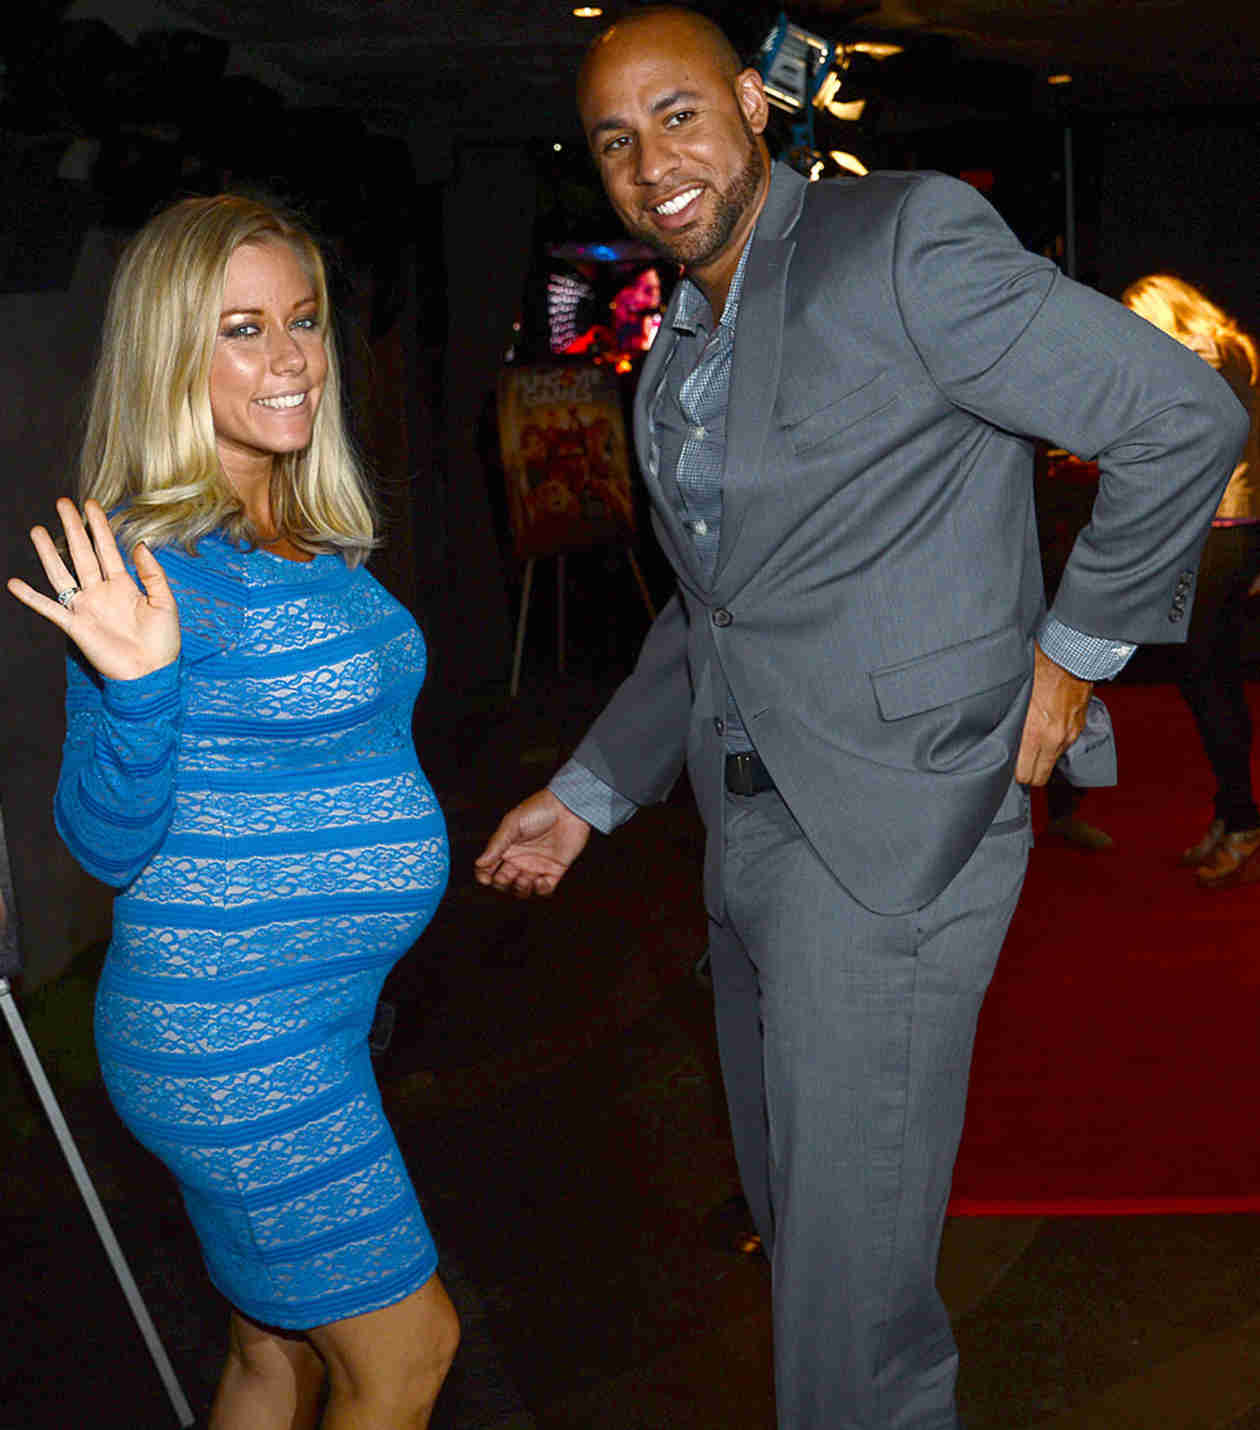 Pregnant Kendra Wilkinson's Bump Pops Out of Super-Tight Dress (PHOTO)